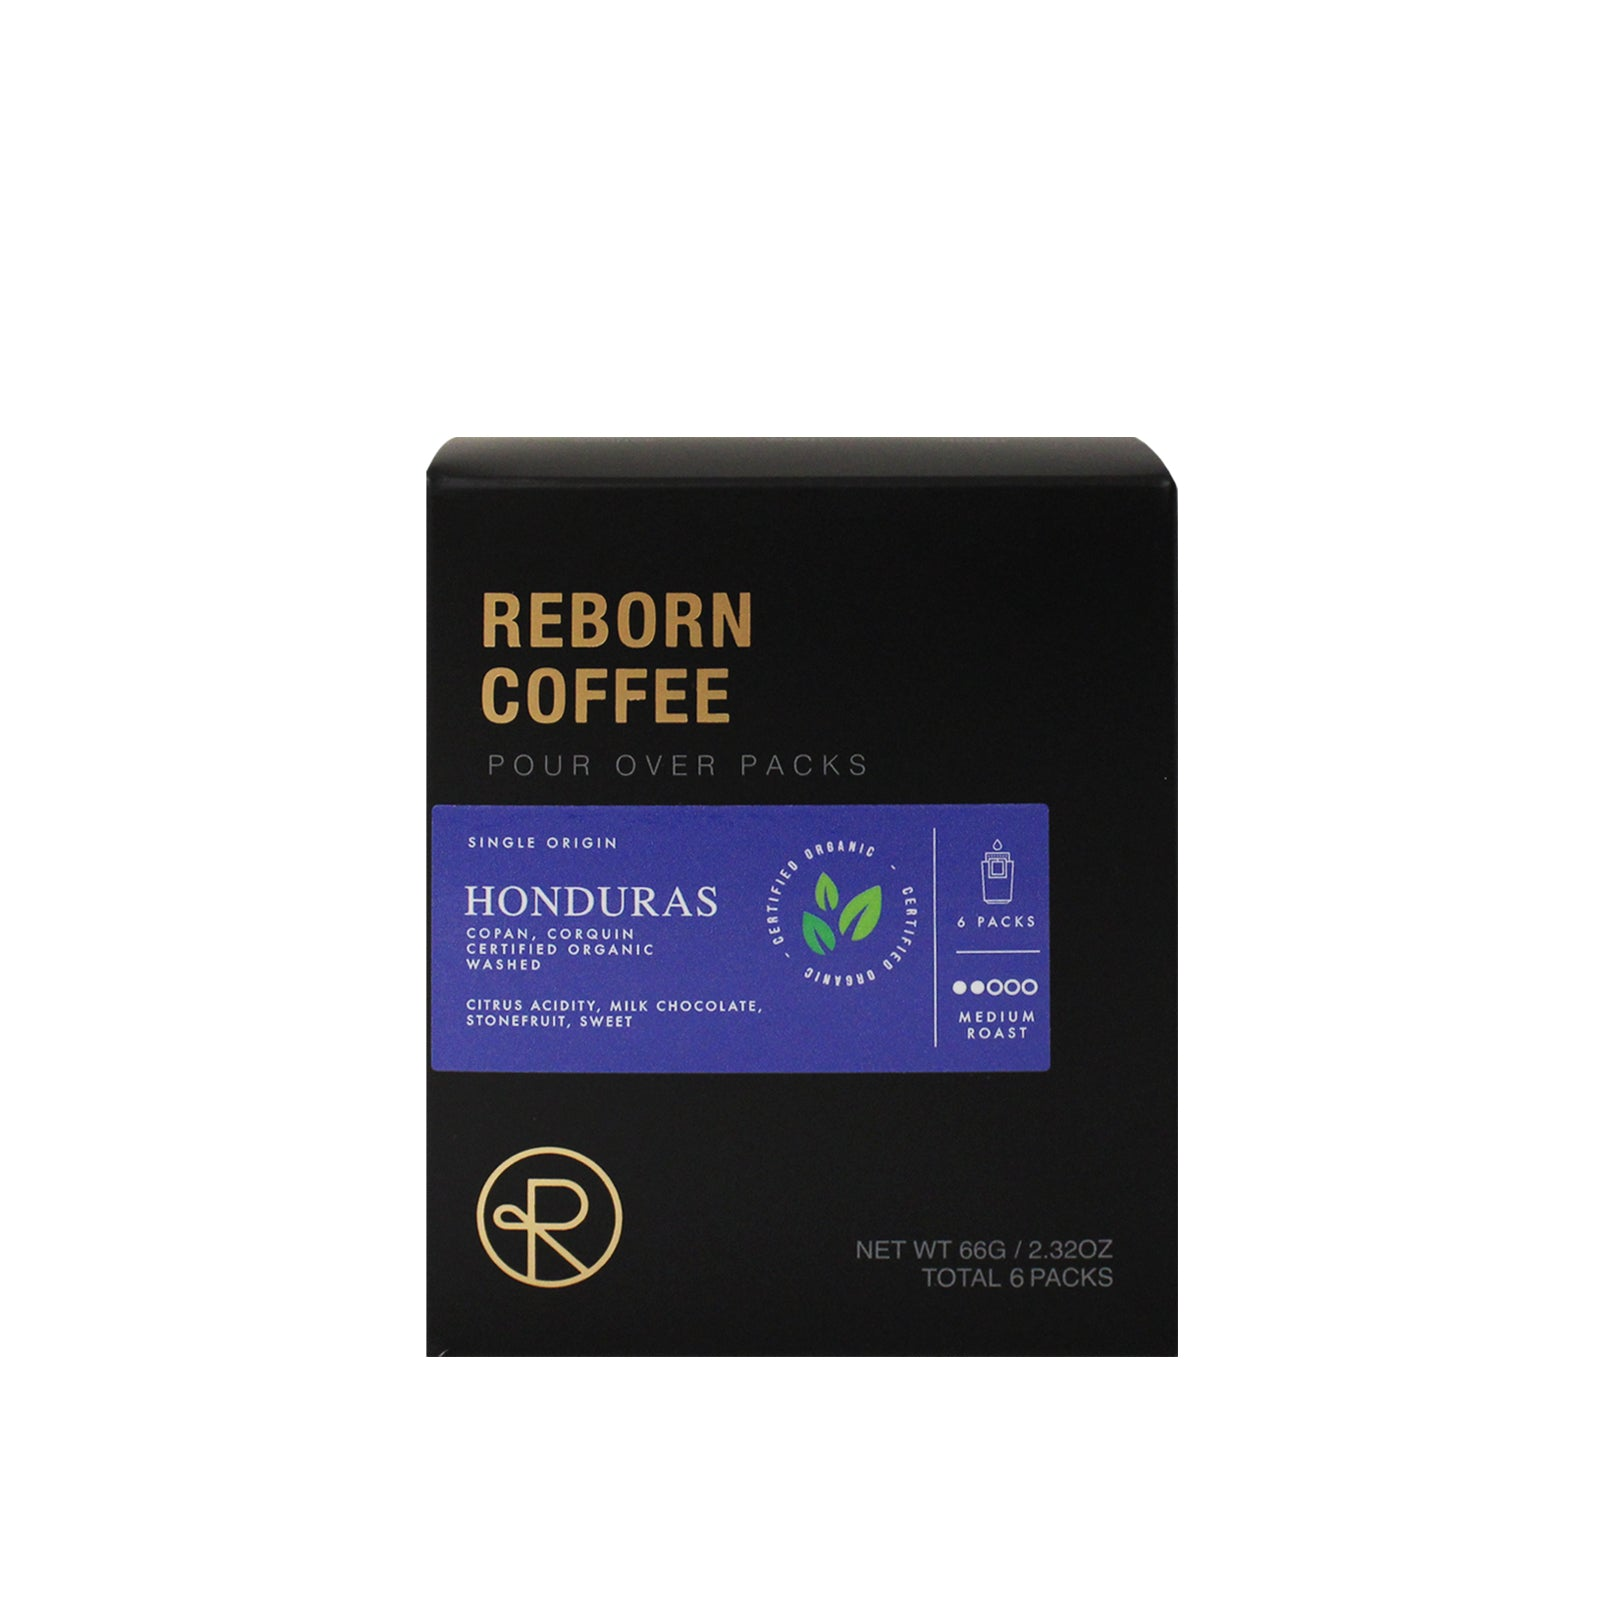 Reborn Coffee Single Serve Pour Over Drip Bag Coffee-Organic Honduras